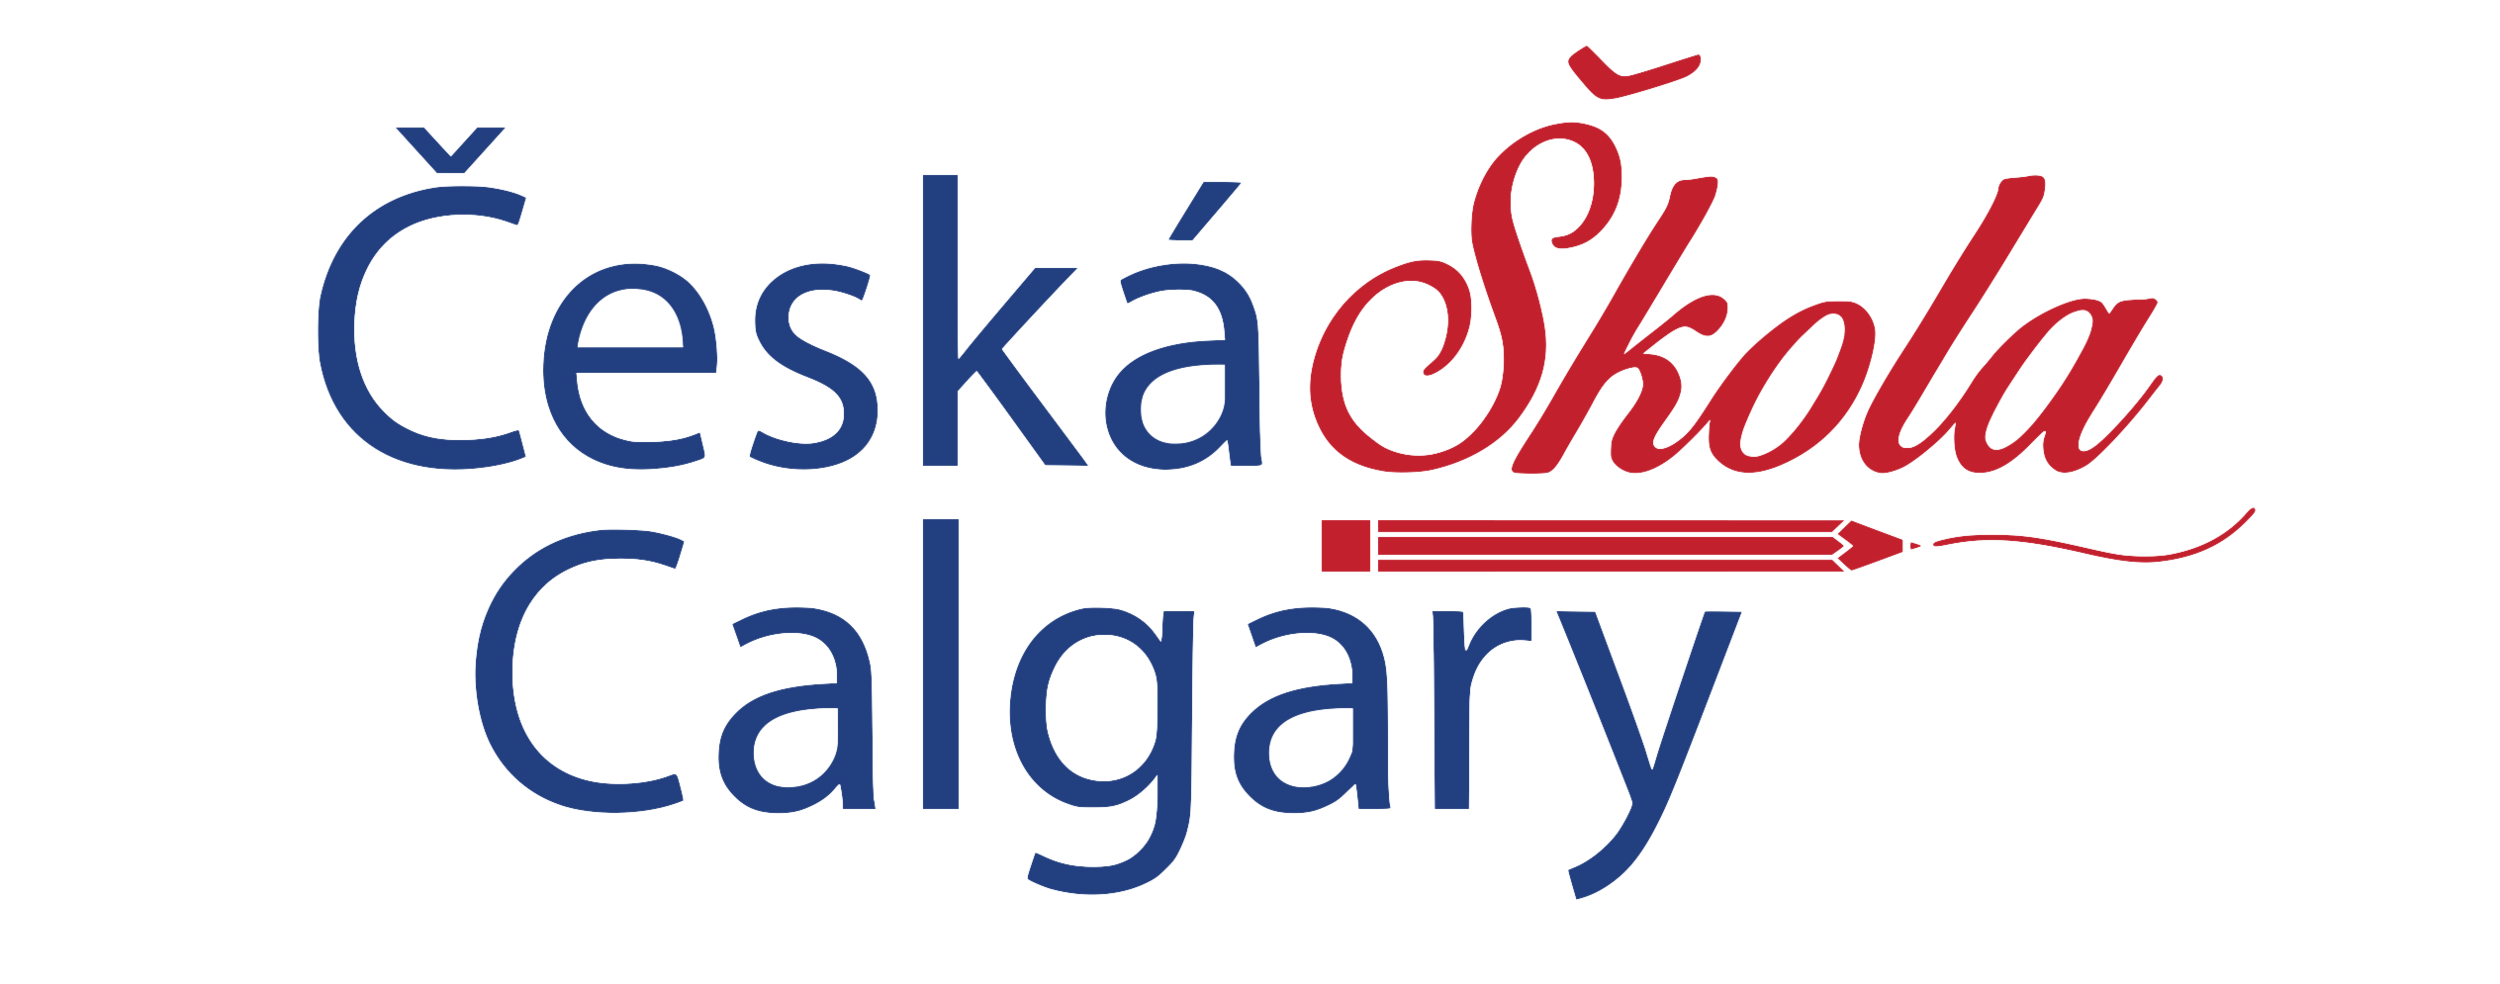 cropped-calgary-czech-school-logo-czech-colour.png